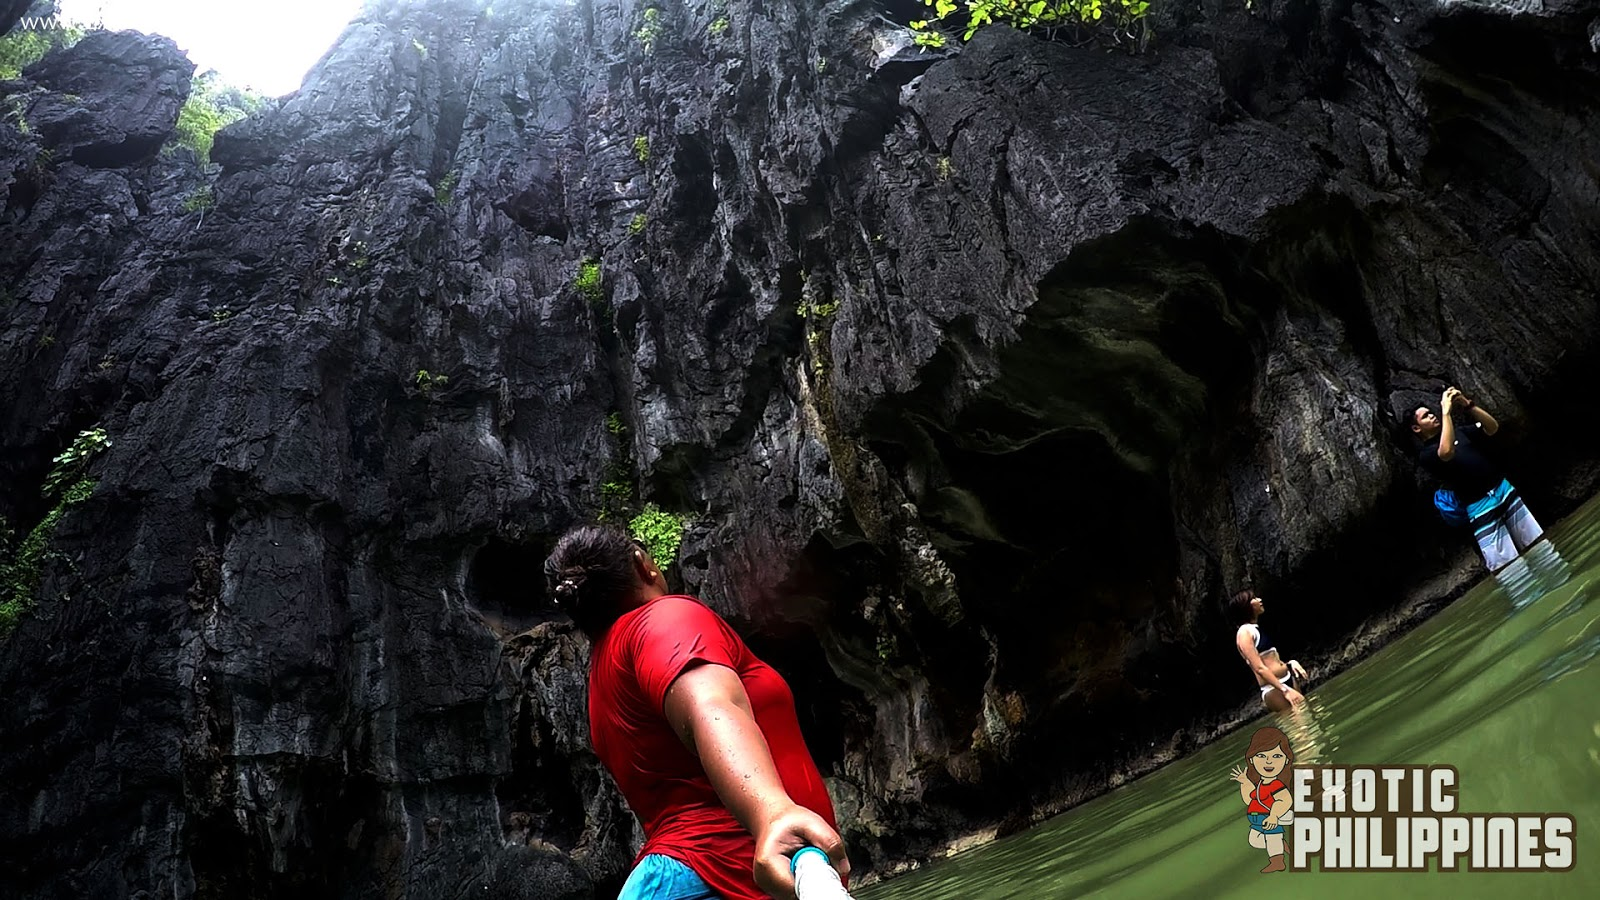 Finding the Secret Lagoon of El Nido Palawan Exotic Philippines Travel Blog Blogger Vlog